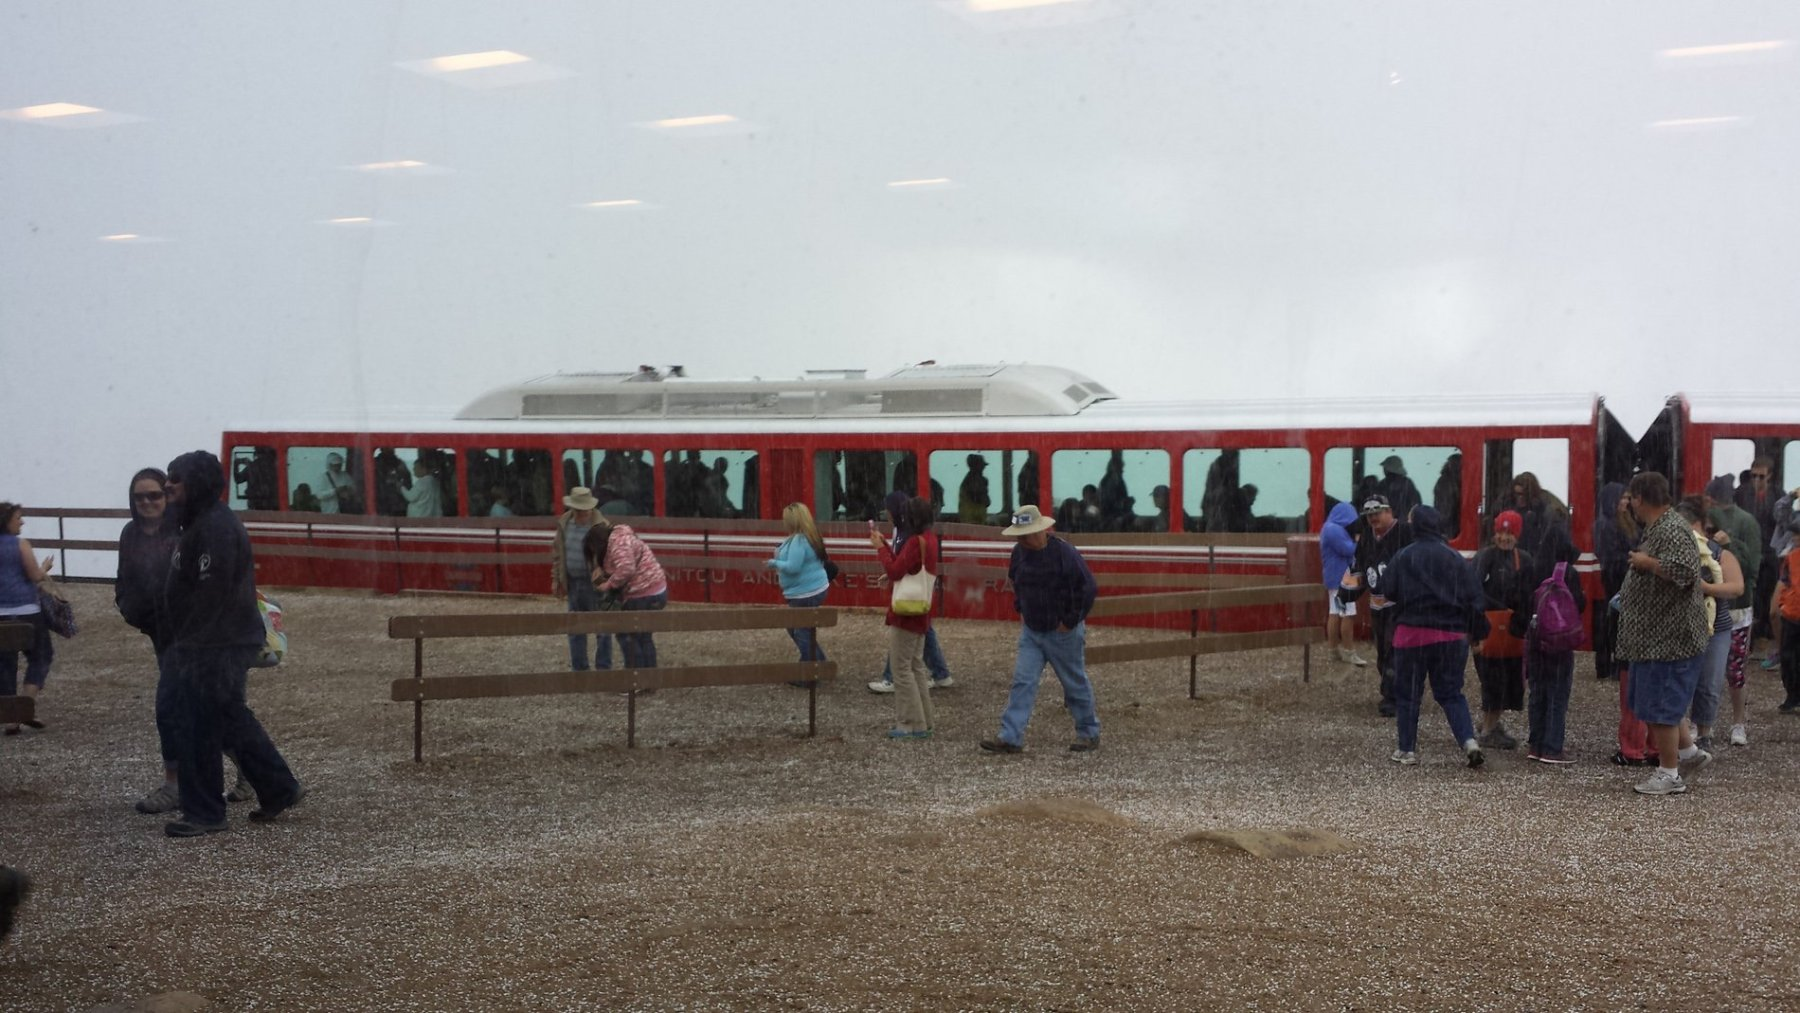 The Pikes Peak Cog Railroad is the alternative to driving to the summit. It takes about three hours.. Craigslegz.com